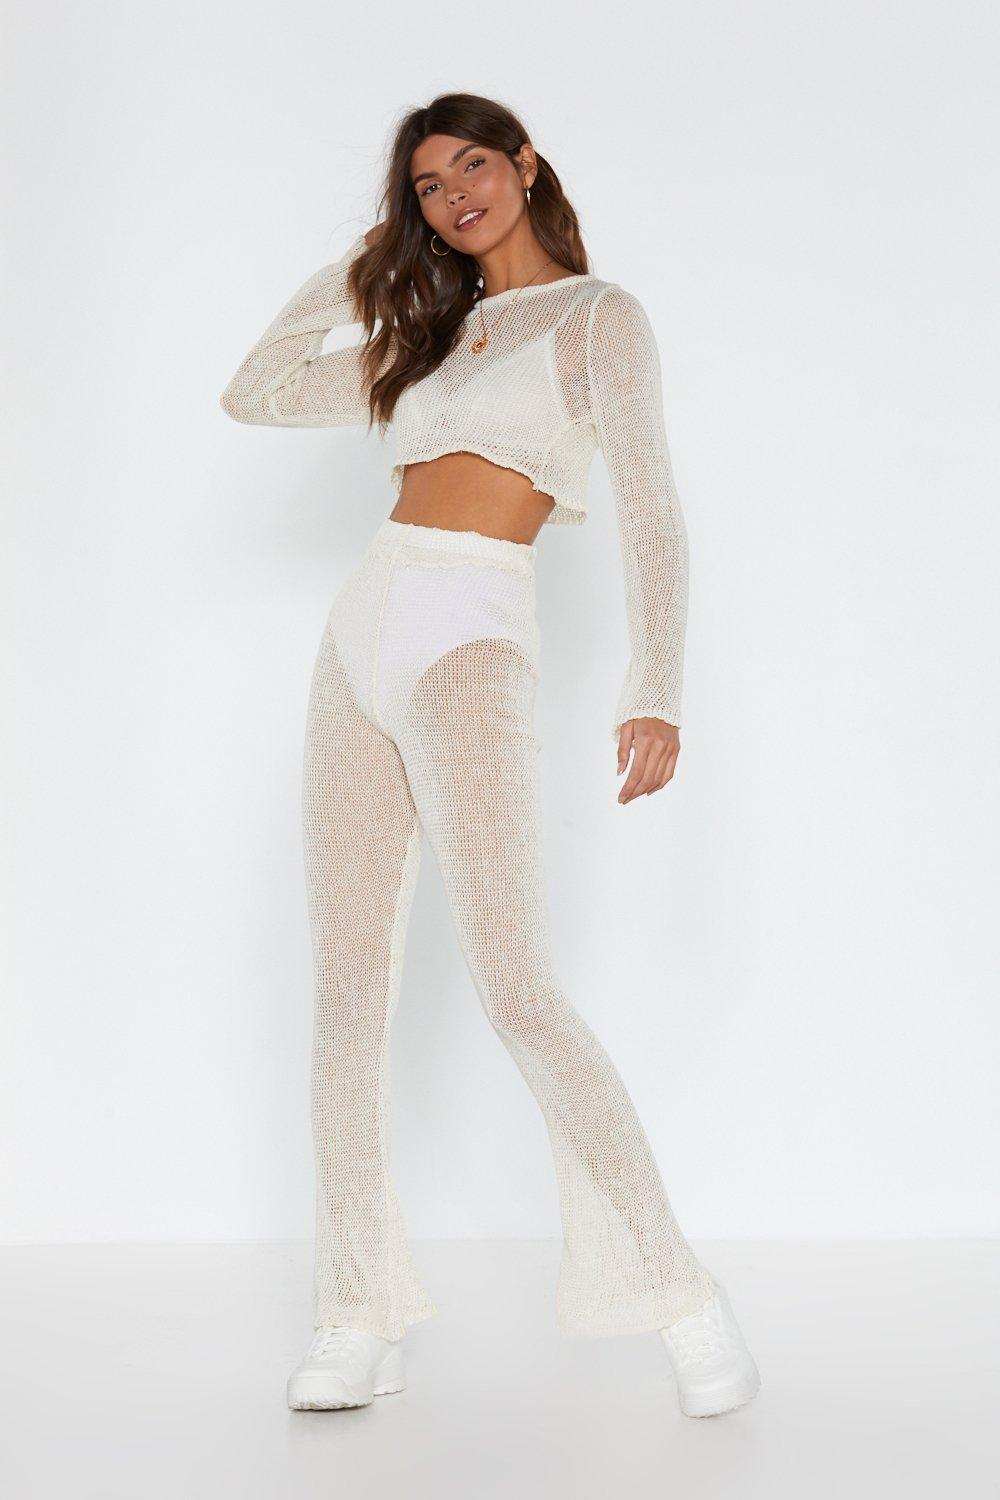 Catch Of The Day Crochet Crop Top And Pants Set by Nasty Gal